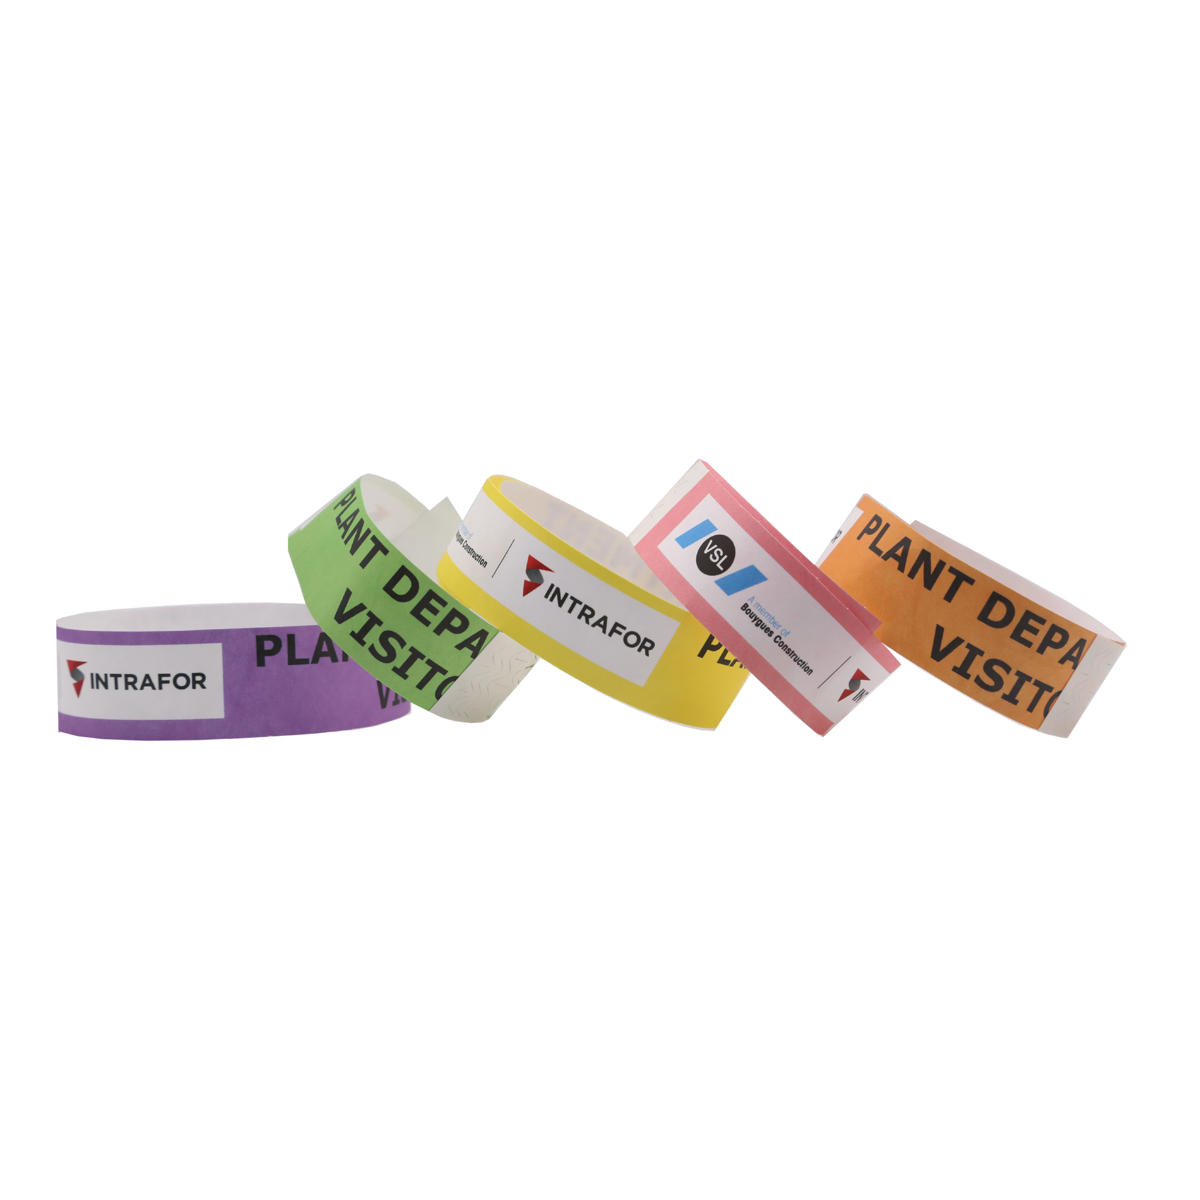 FTGO printable tyvek armband wristbands for both adult and kids event paper wristbands